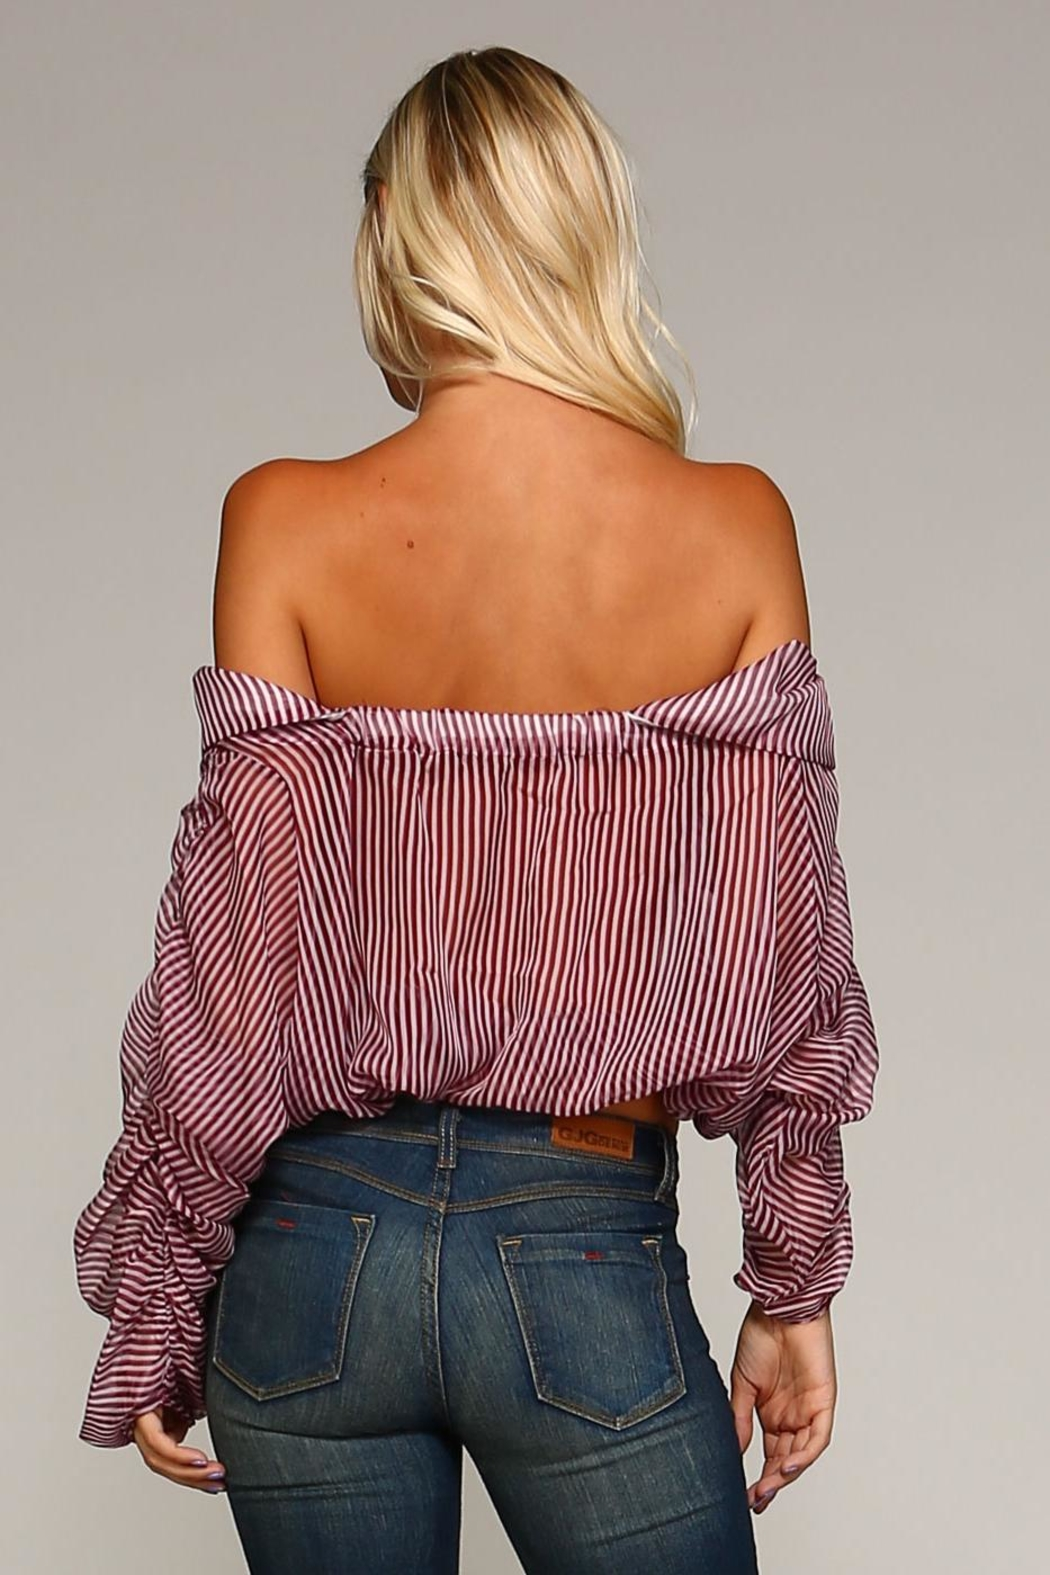 Racine Annabelle Ruffle-Stripe Top - Back Cropped Image